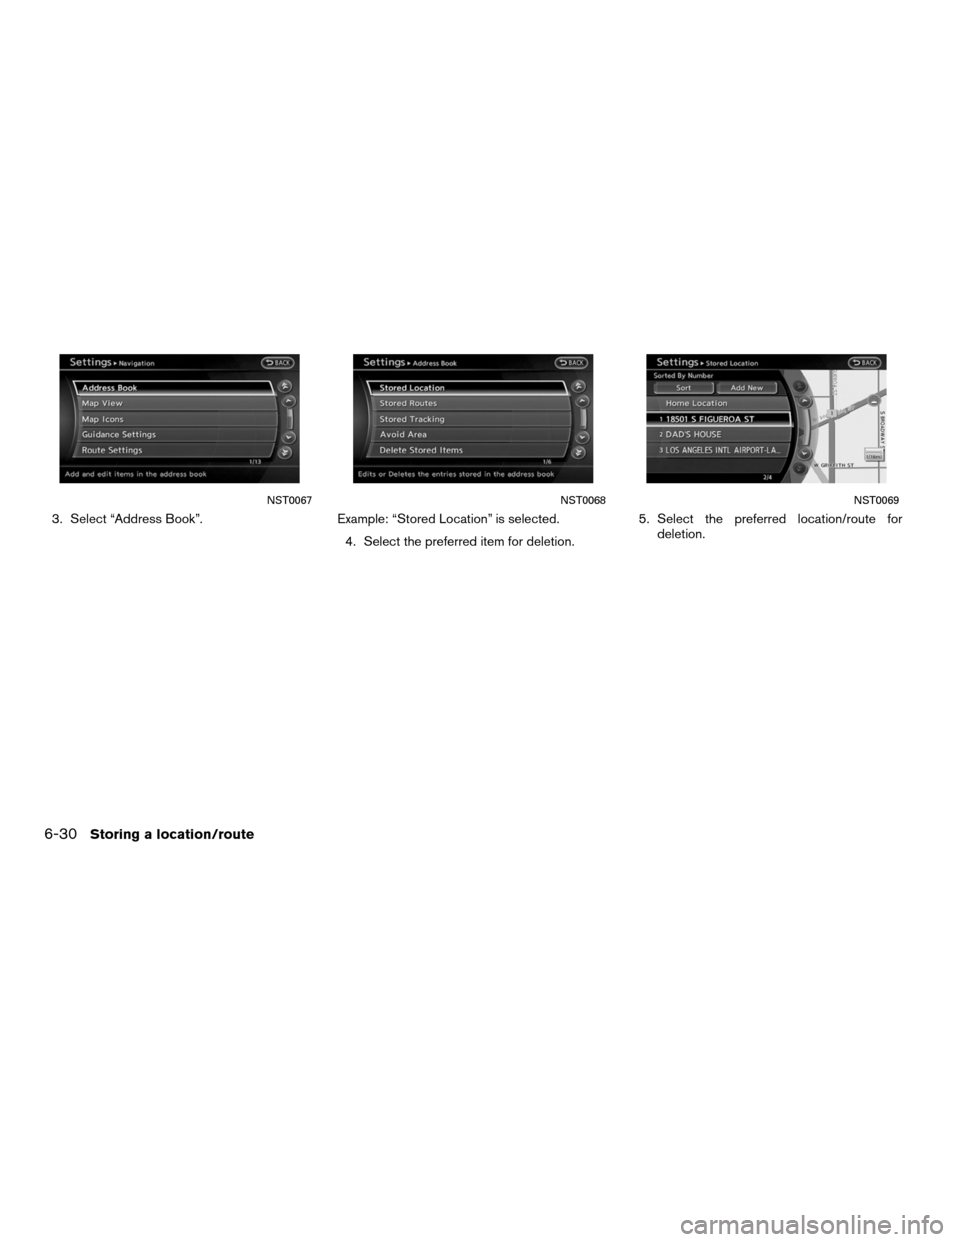 NISSAN ALTIMA HYBRID 2011 L32A / 4.G Navigation Manual, Page 180